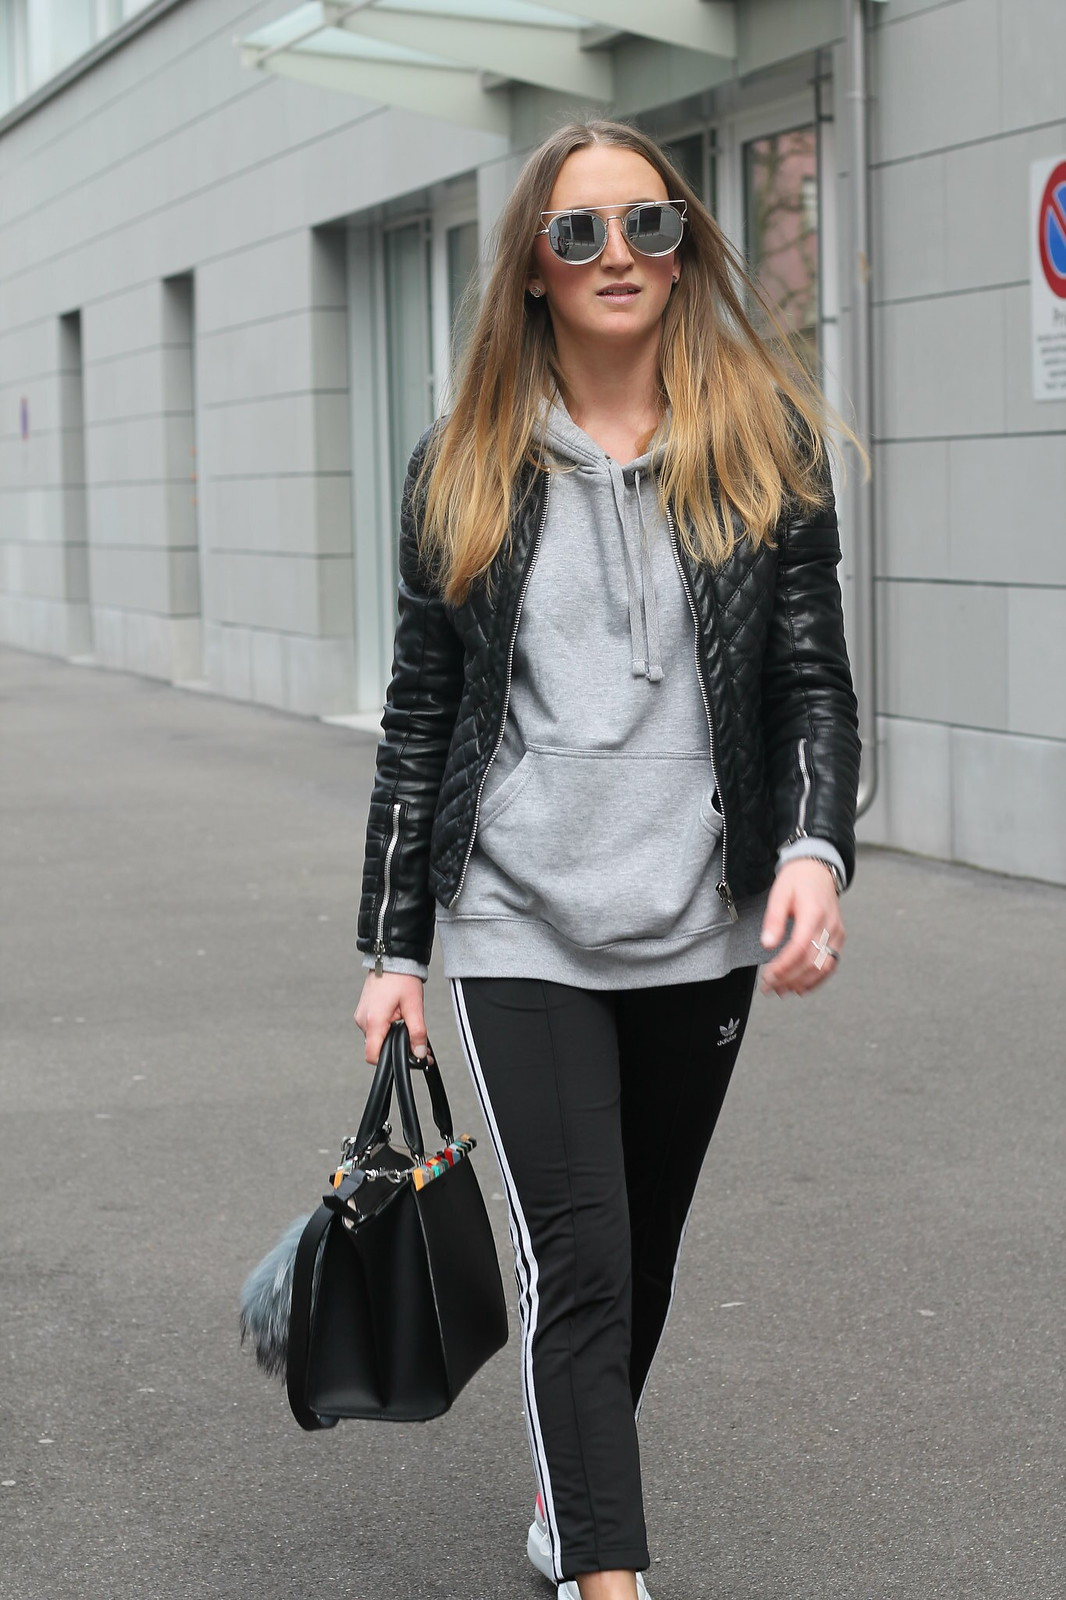 jogging-pants-and-alexander-mcqueen-sneakers-whole-outfit-walk-wiebkembg